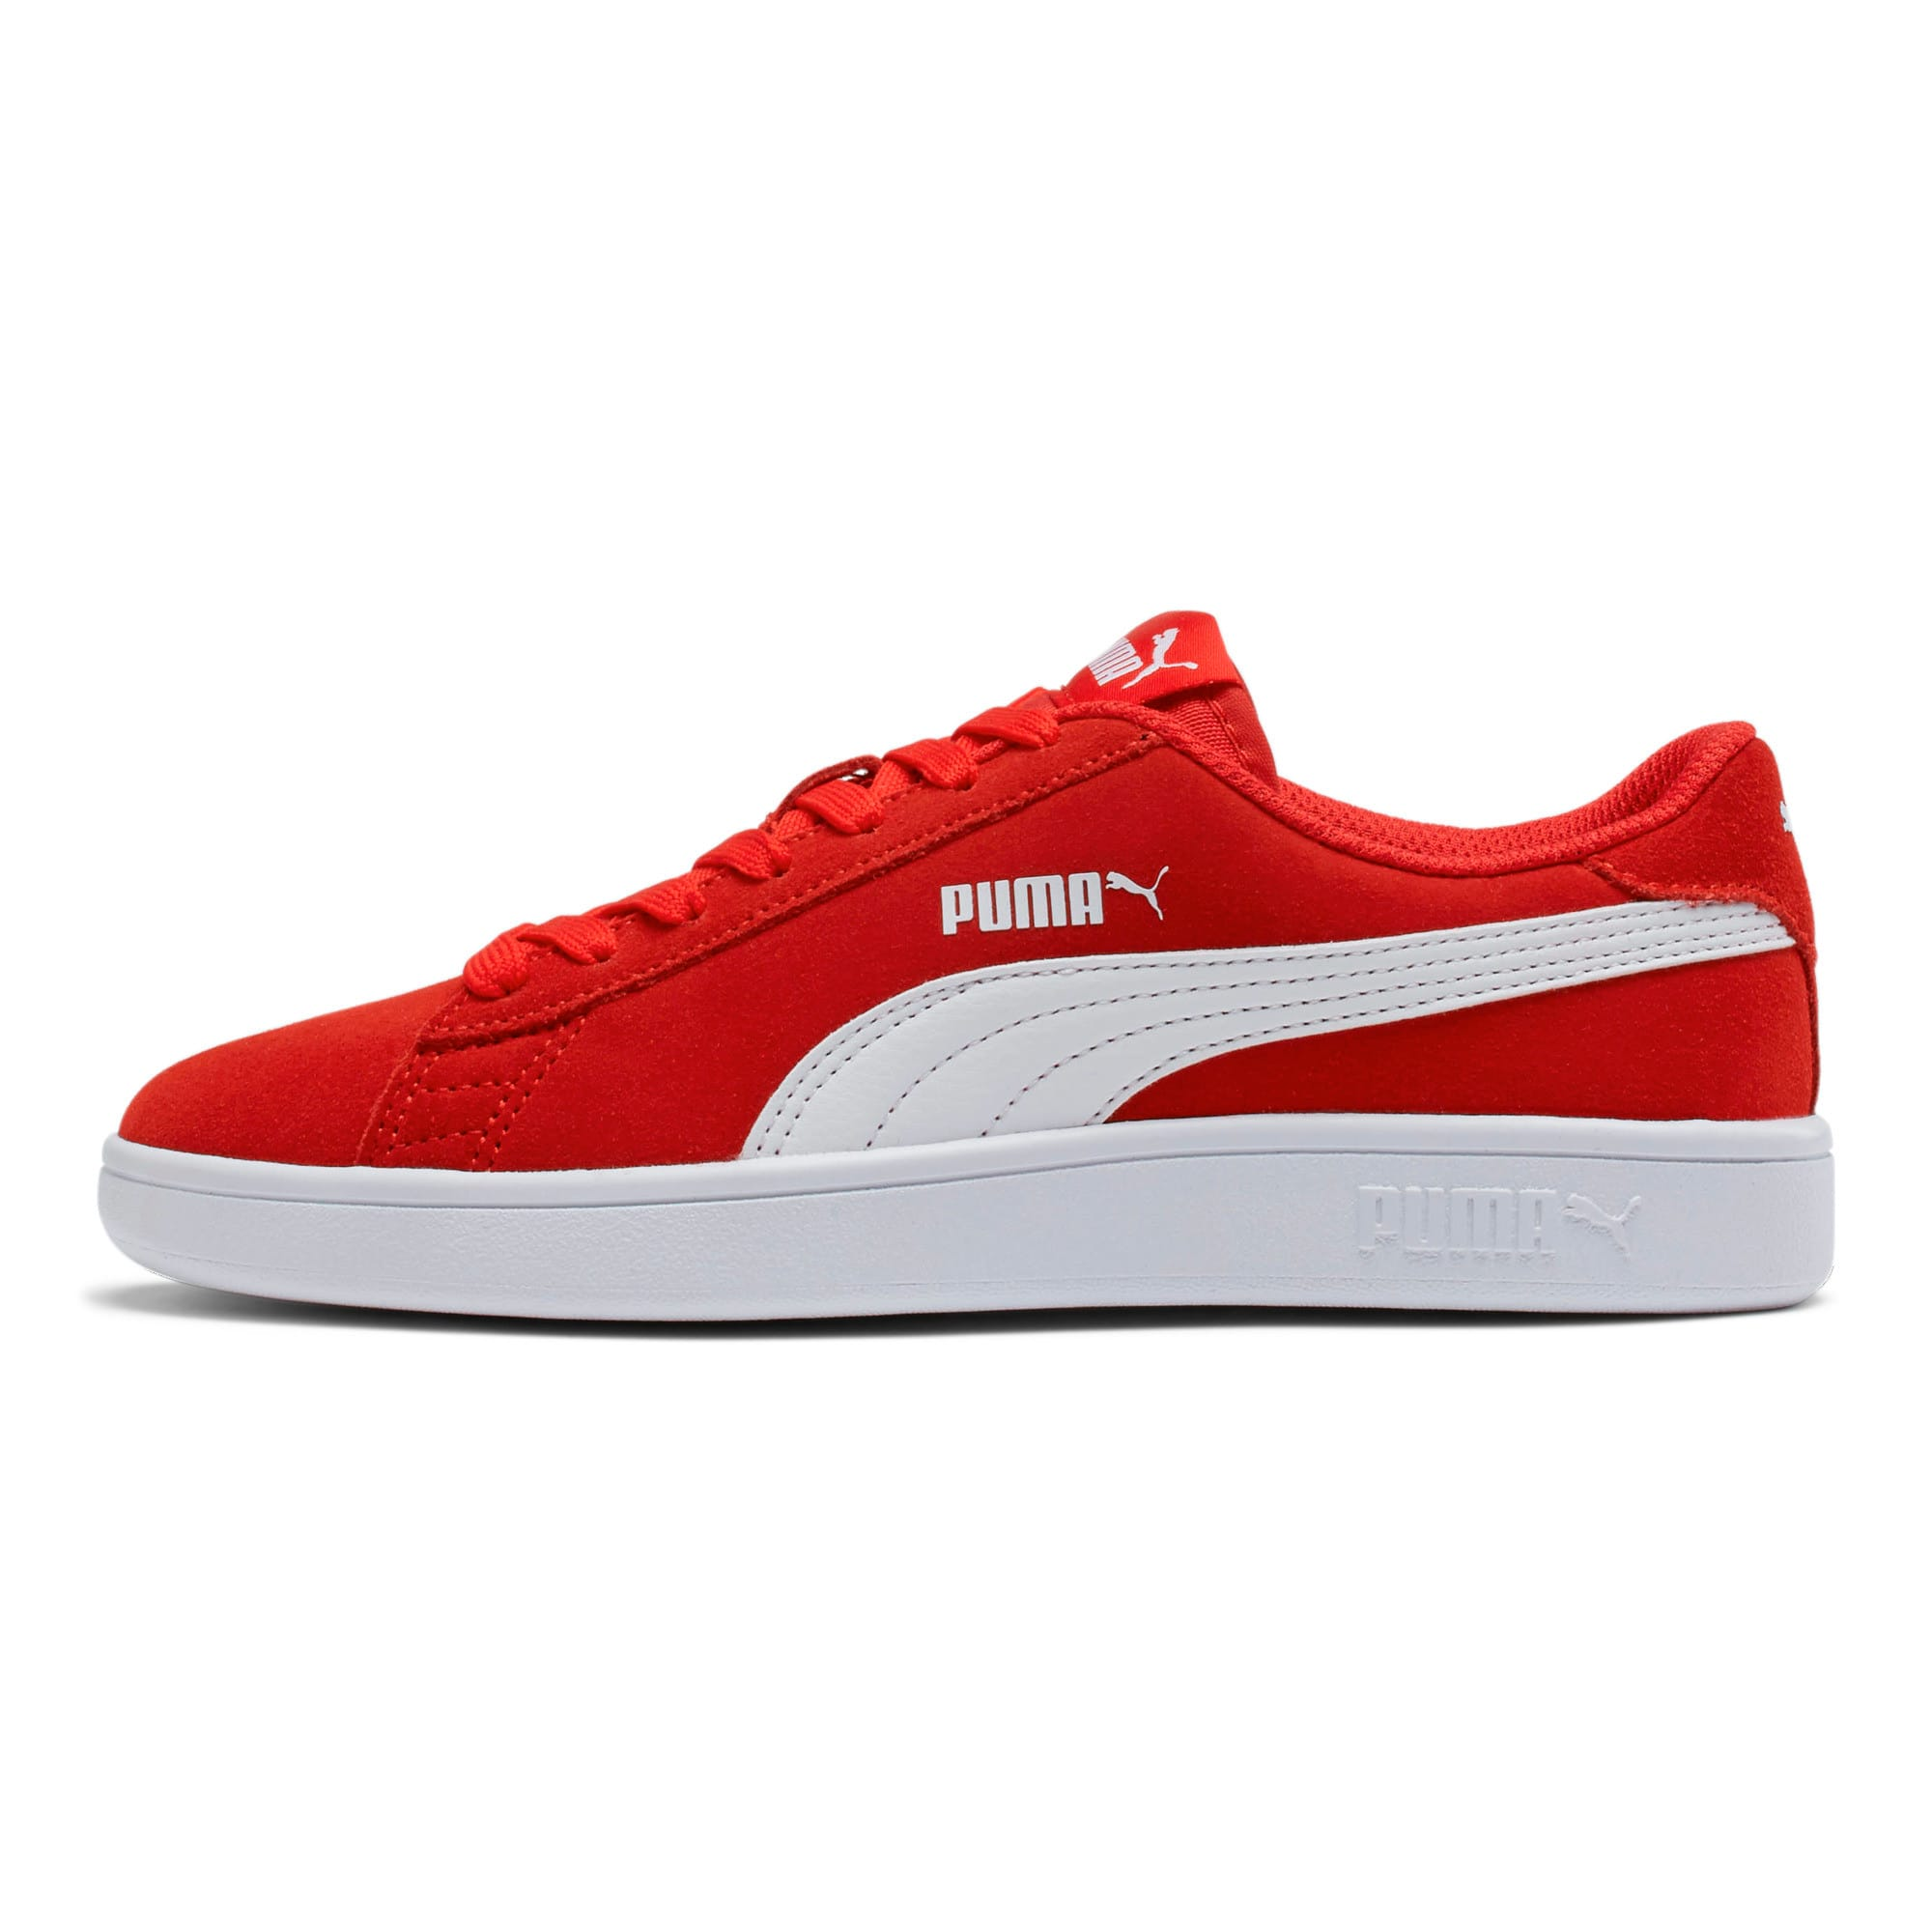 Thumbnail 1 of Smash v2 Suede Sneakers JR, High Risk Red-Puma White, medium